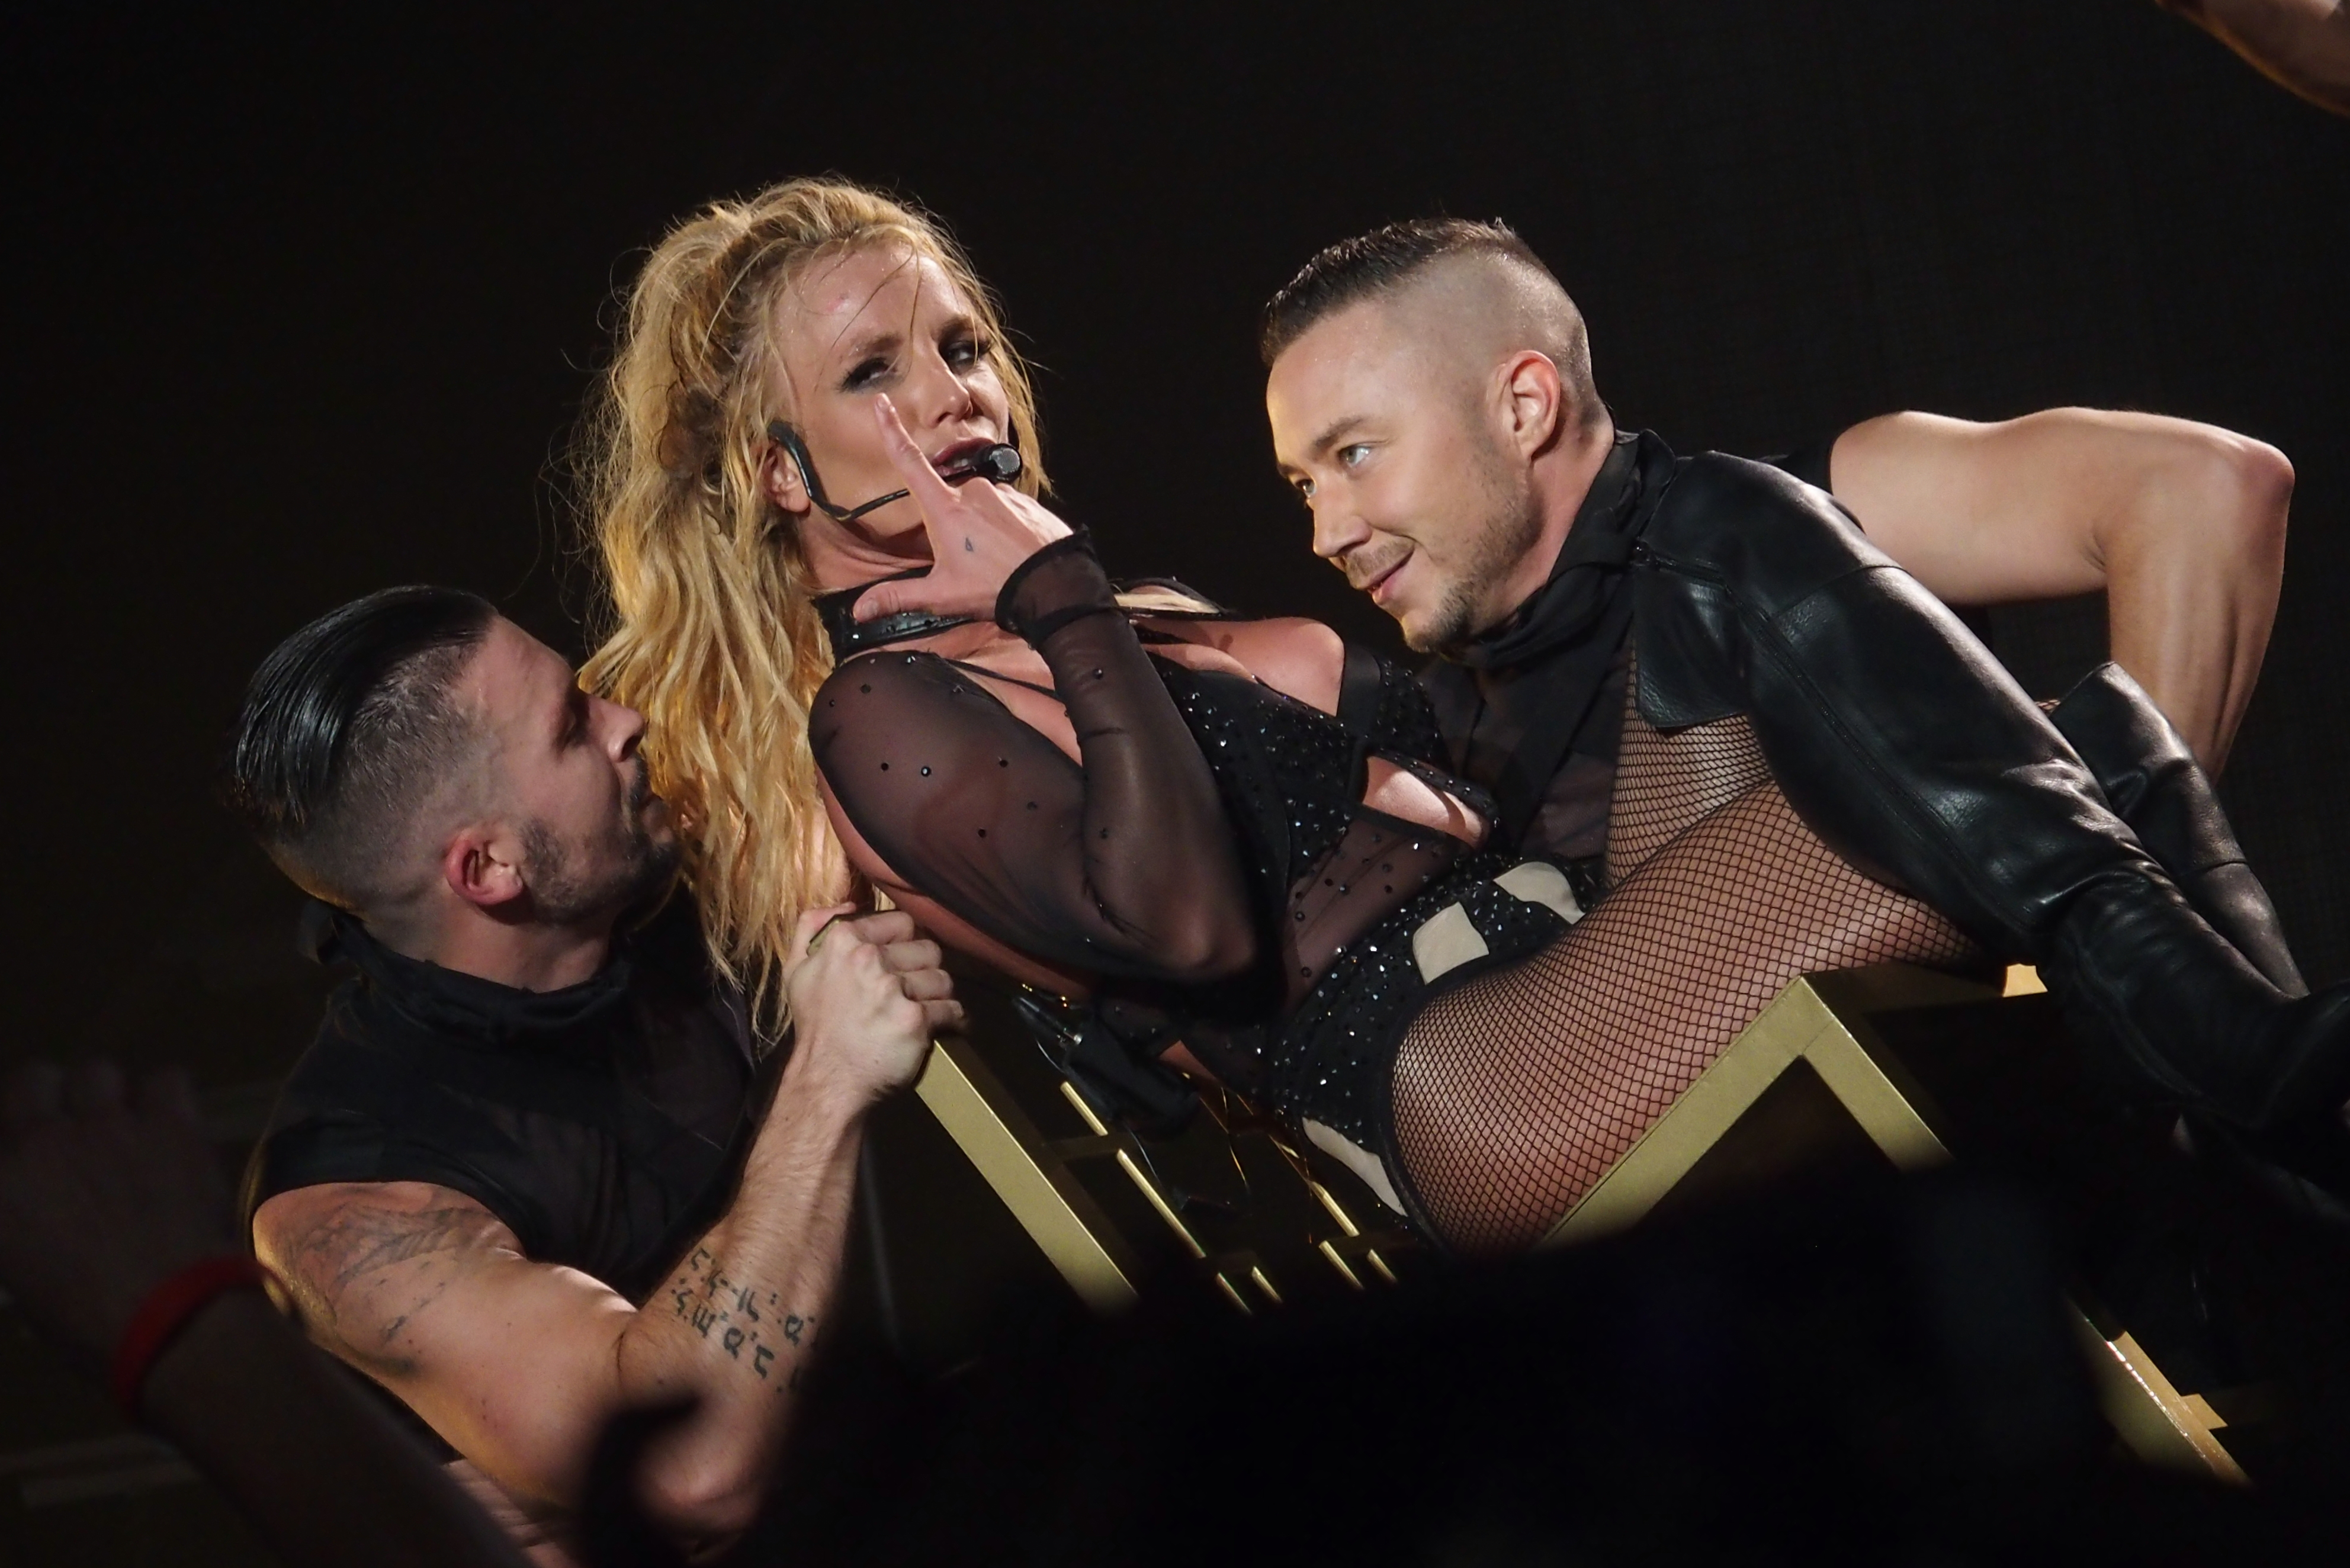 Britney Spears Glory Album Cover Art Is Making Some